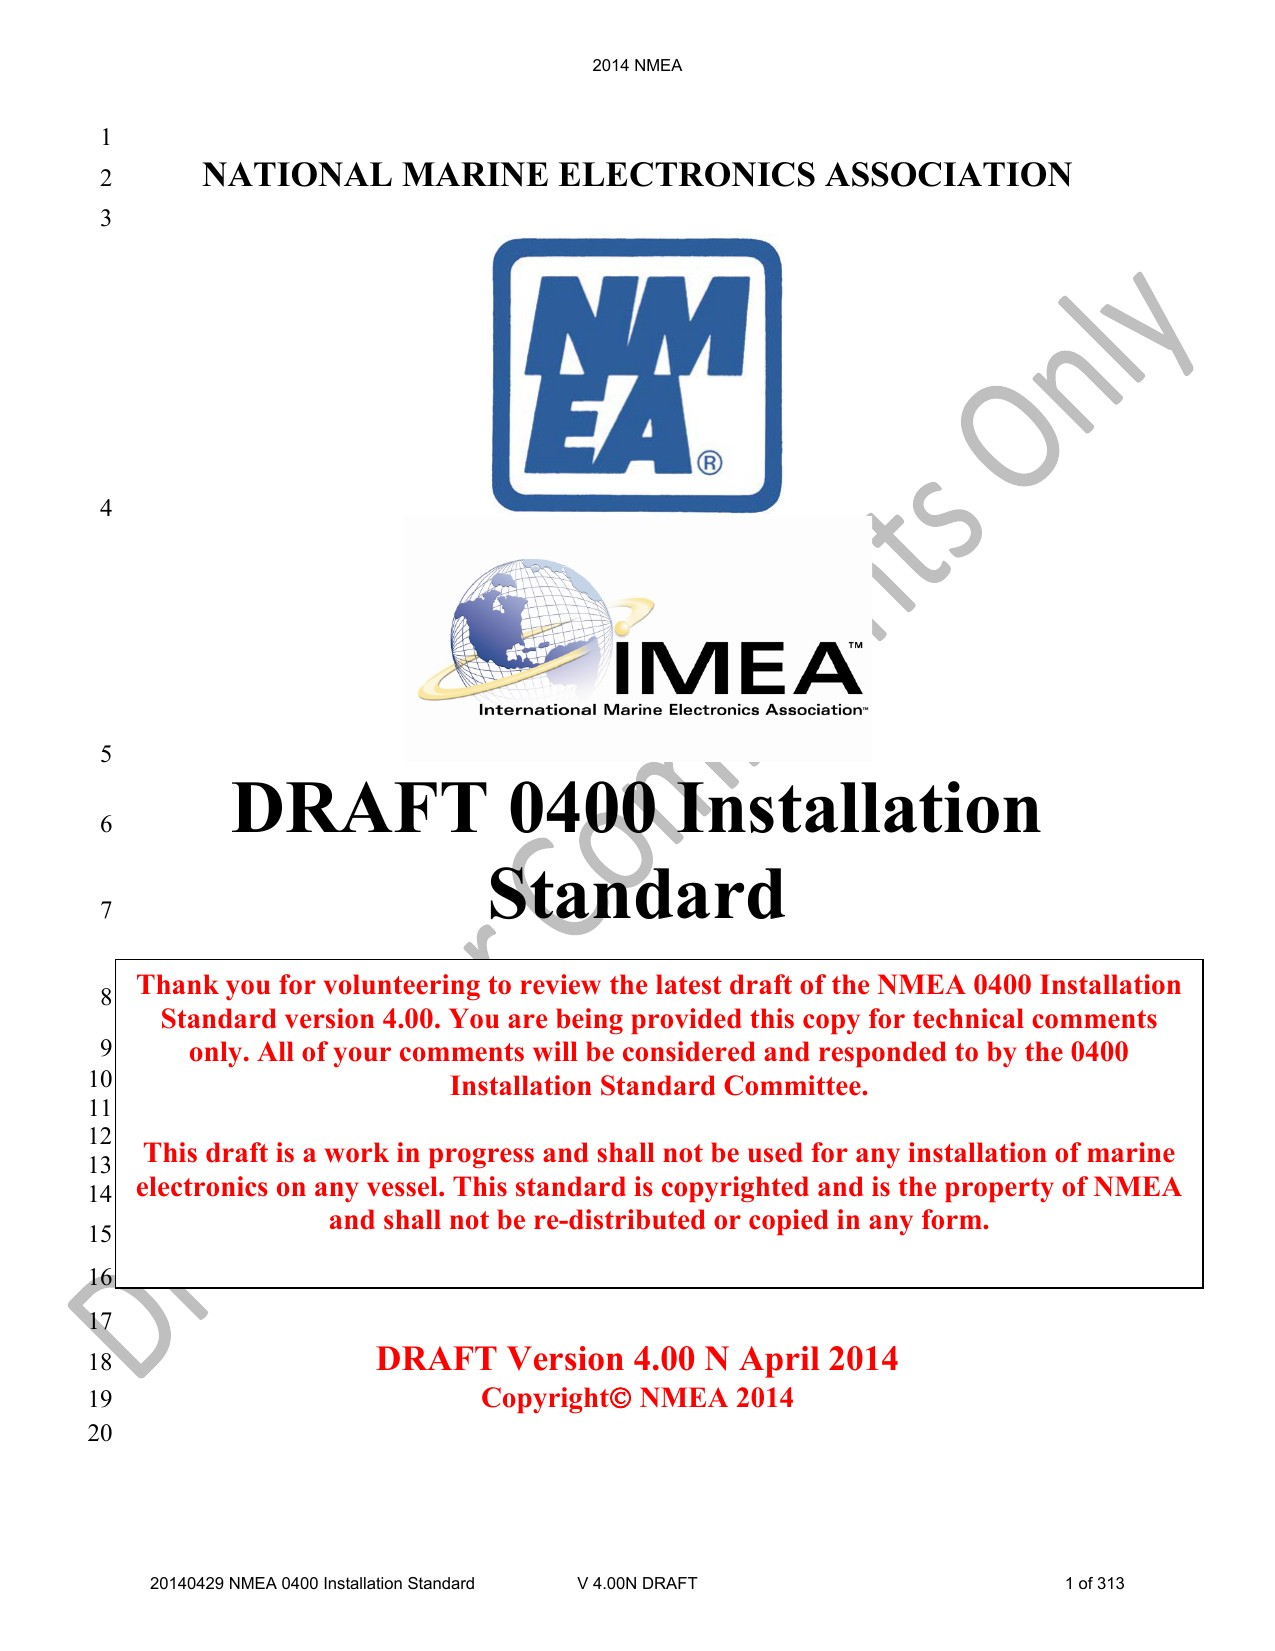 DRAFT 0400 Installation Standard National Marine Electronics